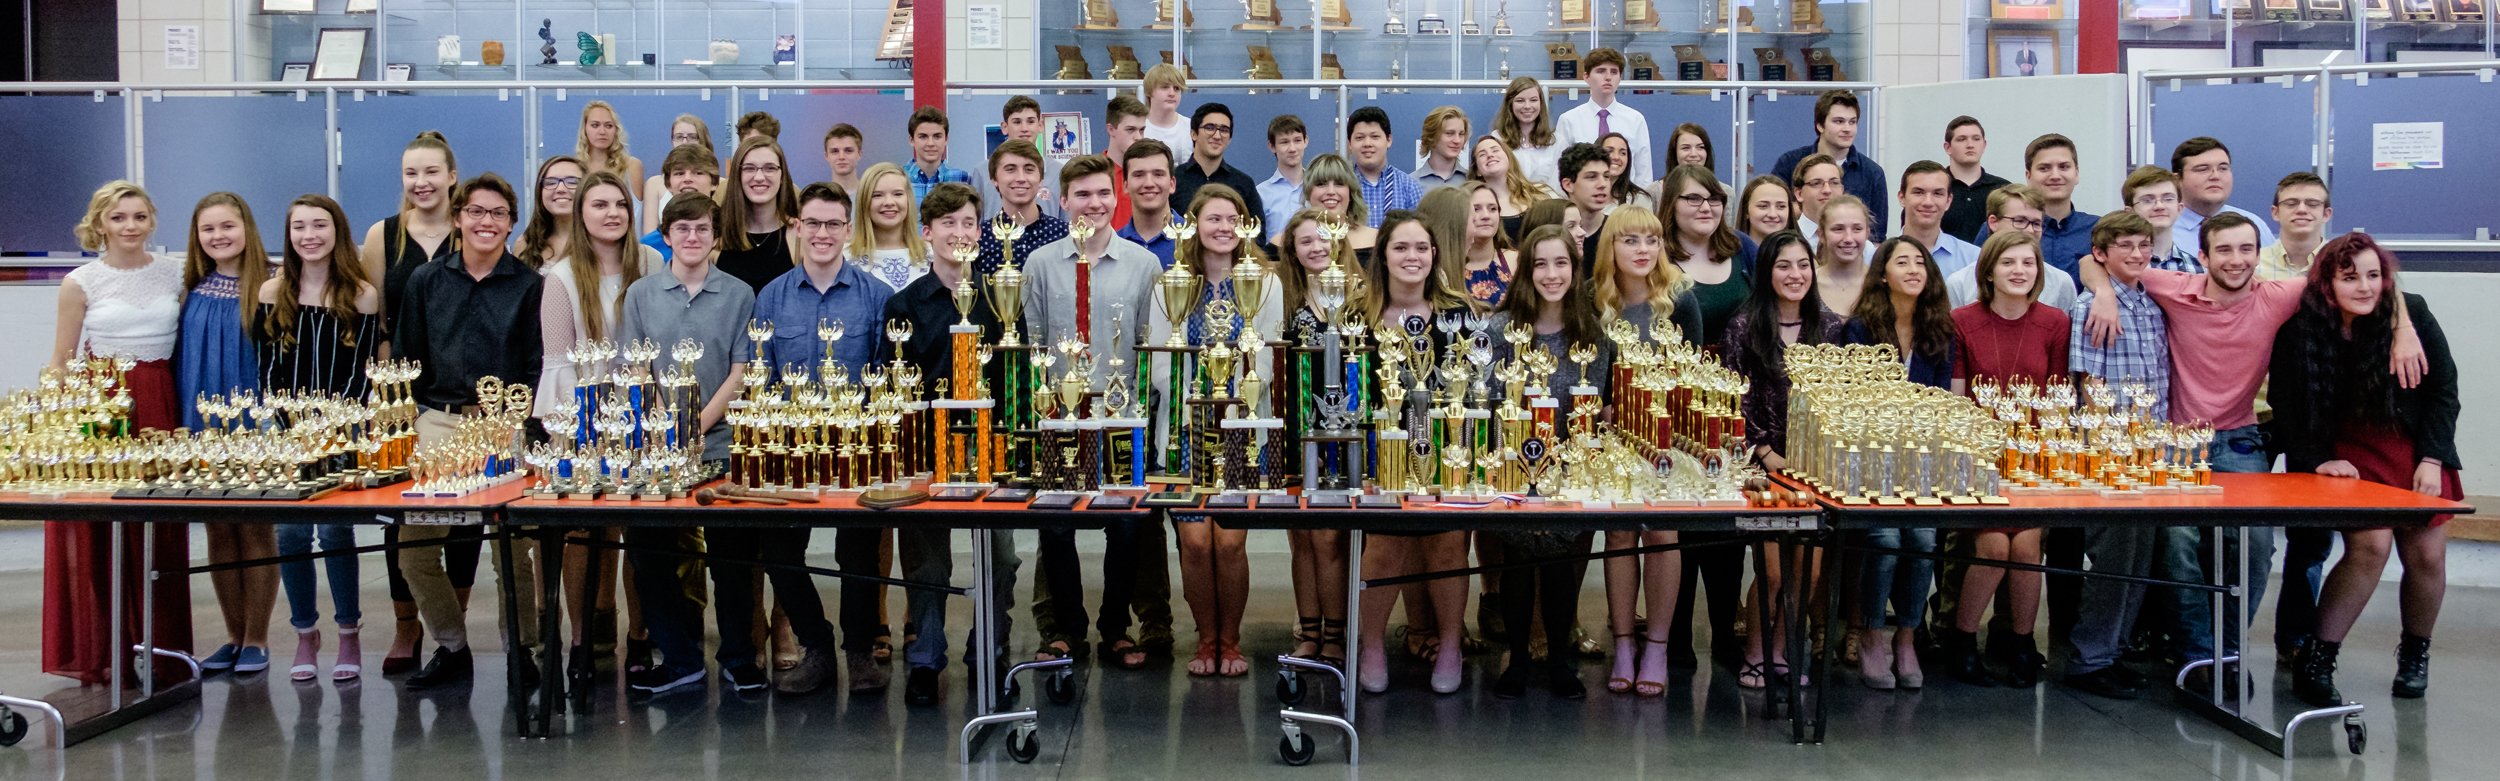 photograph of the 2017 Glendale High School Students with their Speech and Debate Trophies